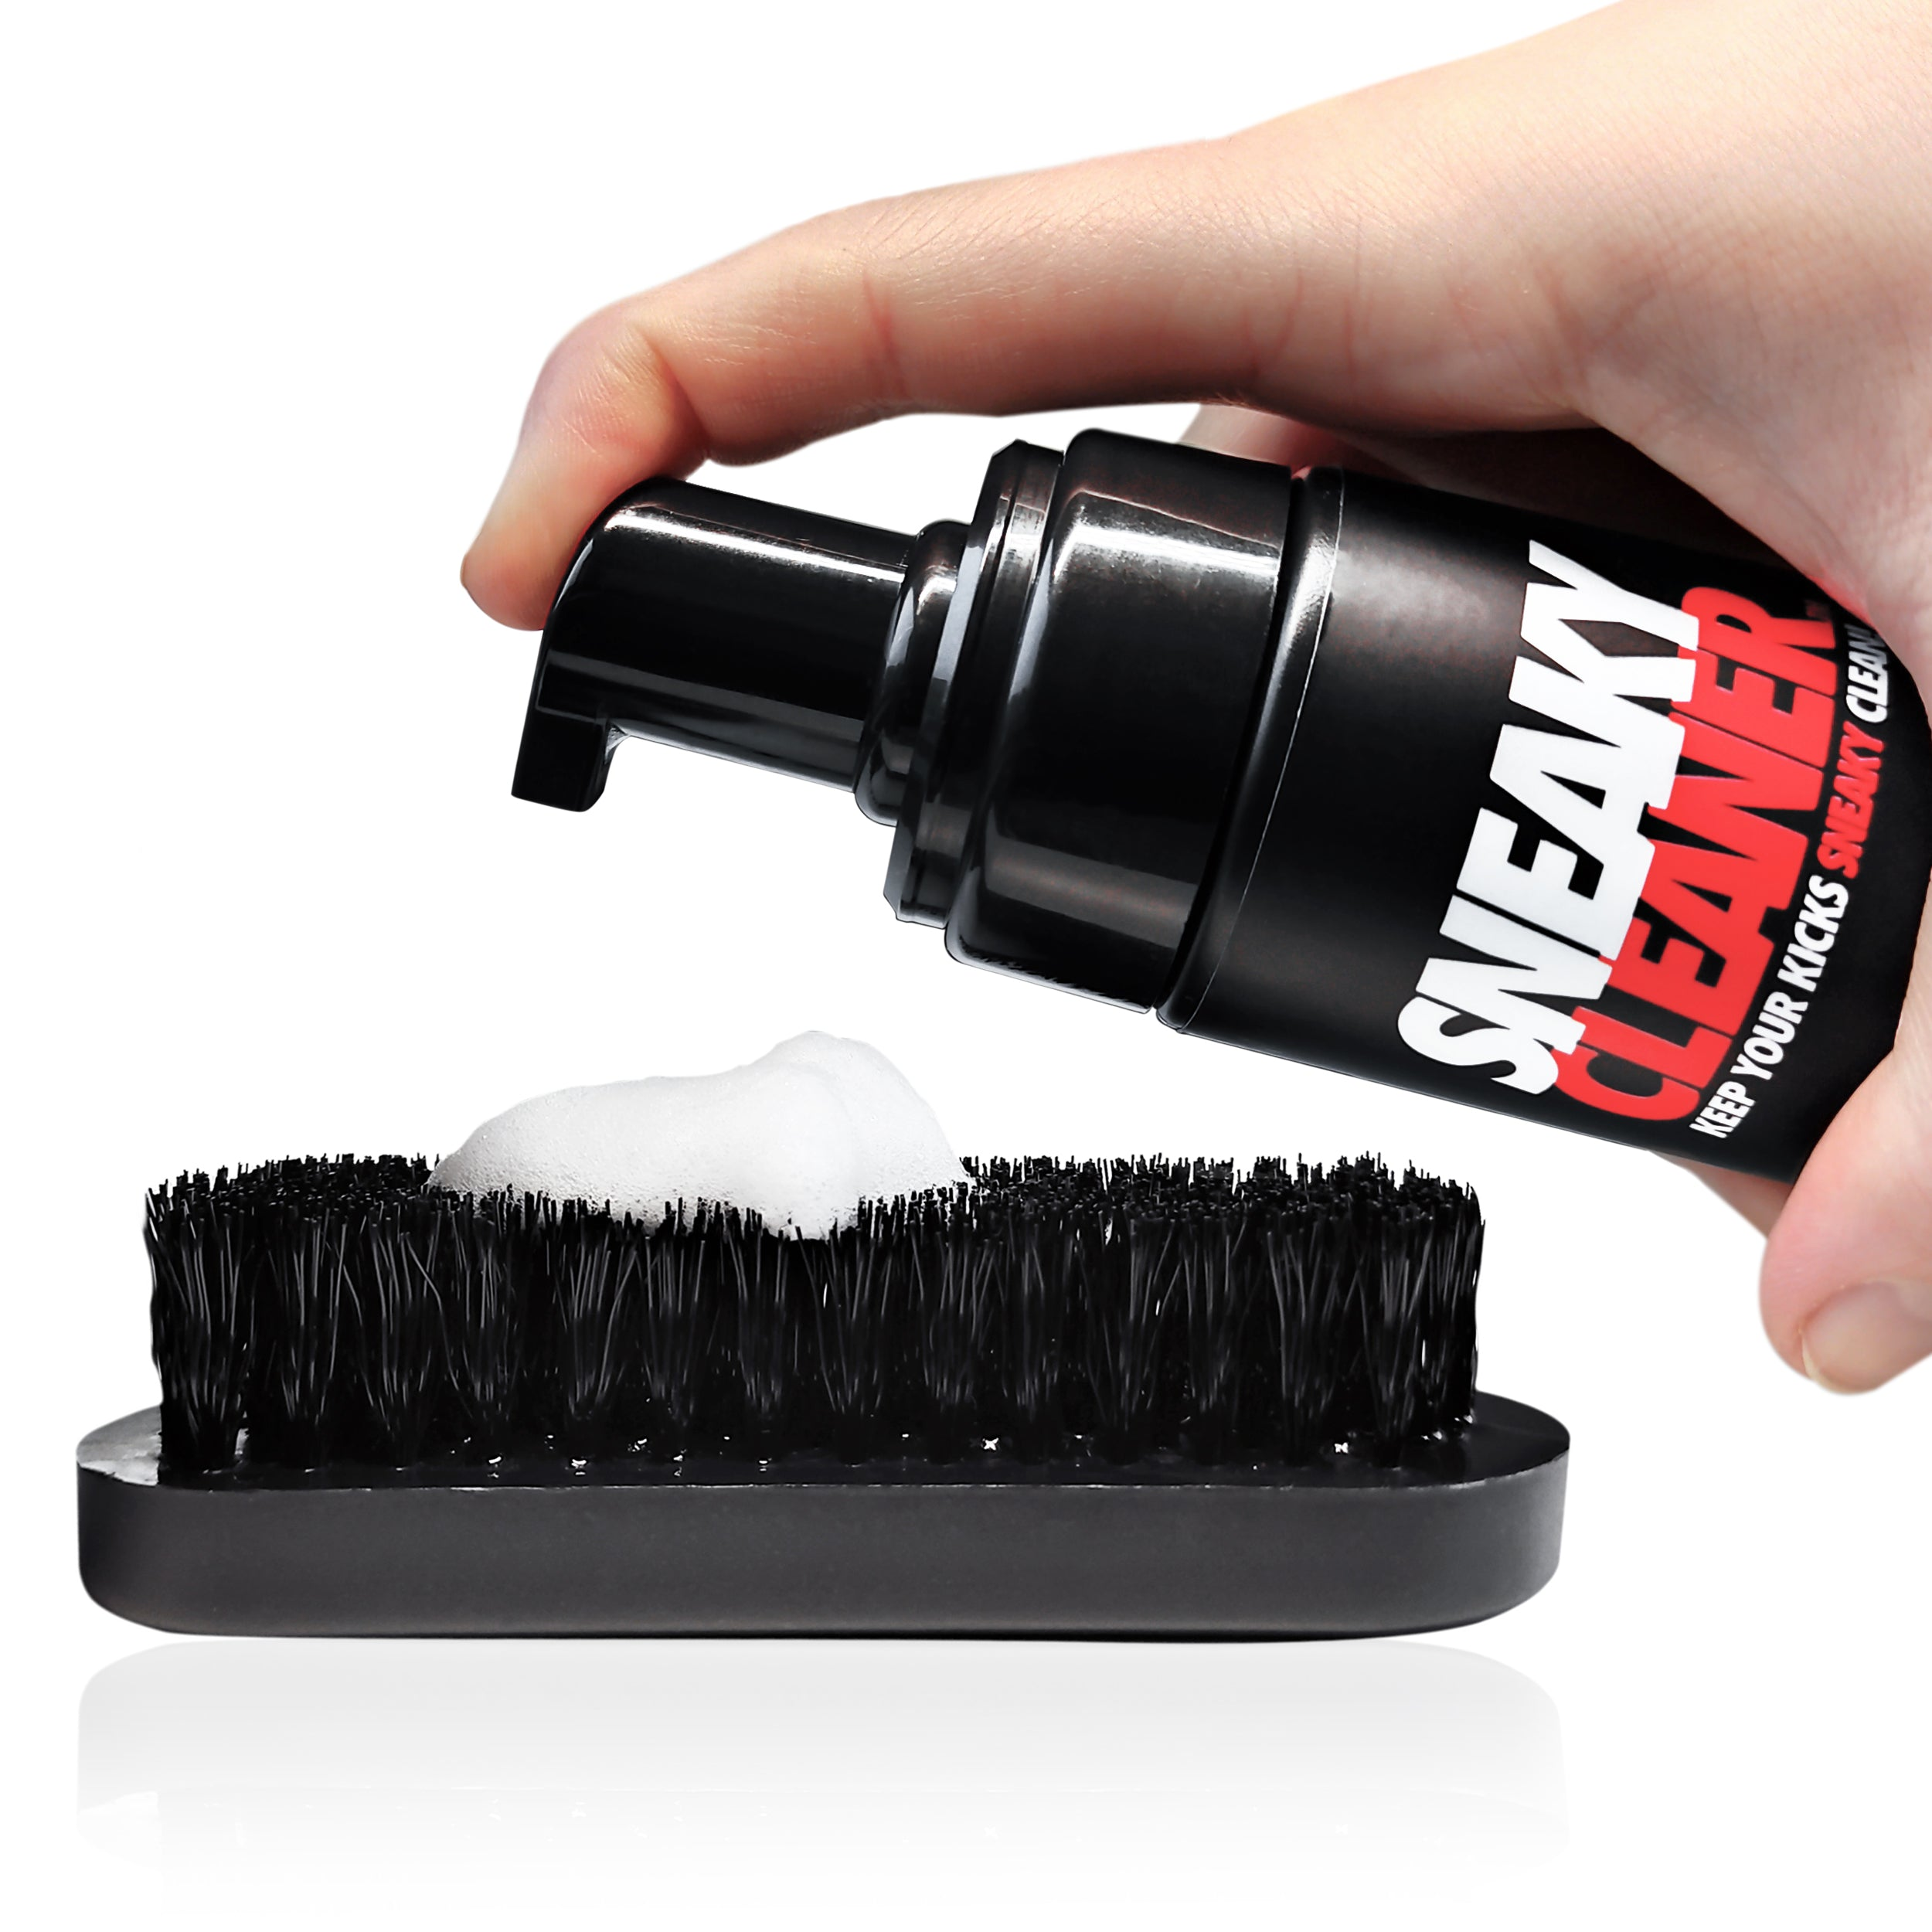 Sneaky Cleaning Kit - Shoe and Trainer Cleaning Kit